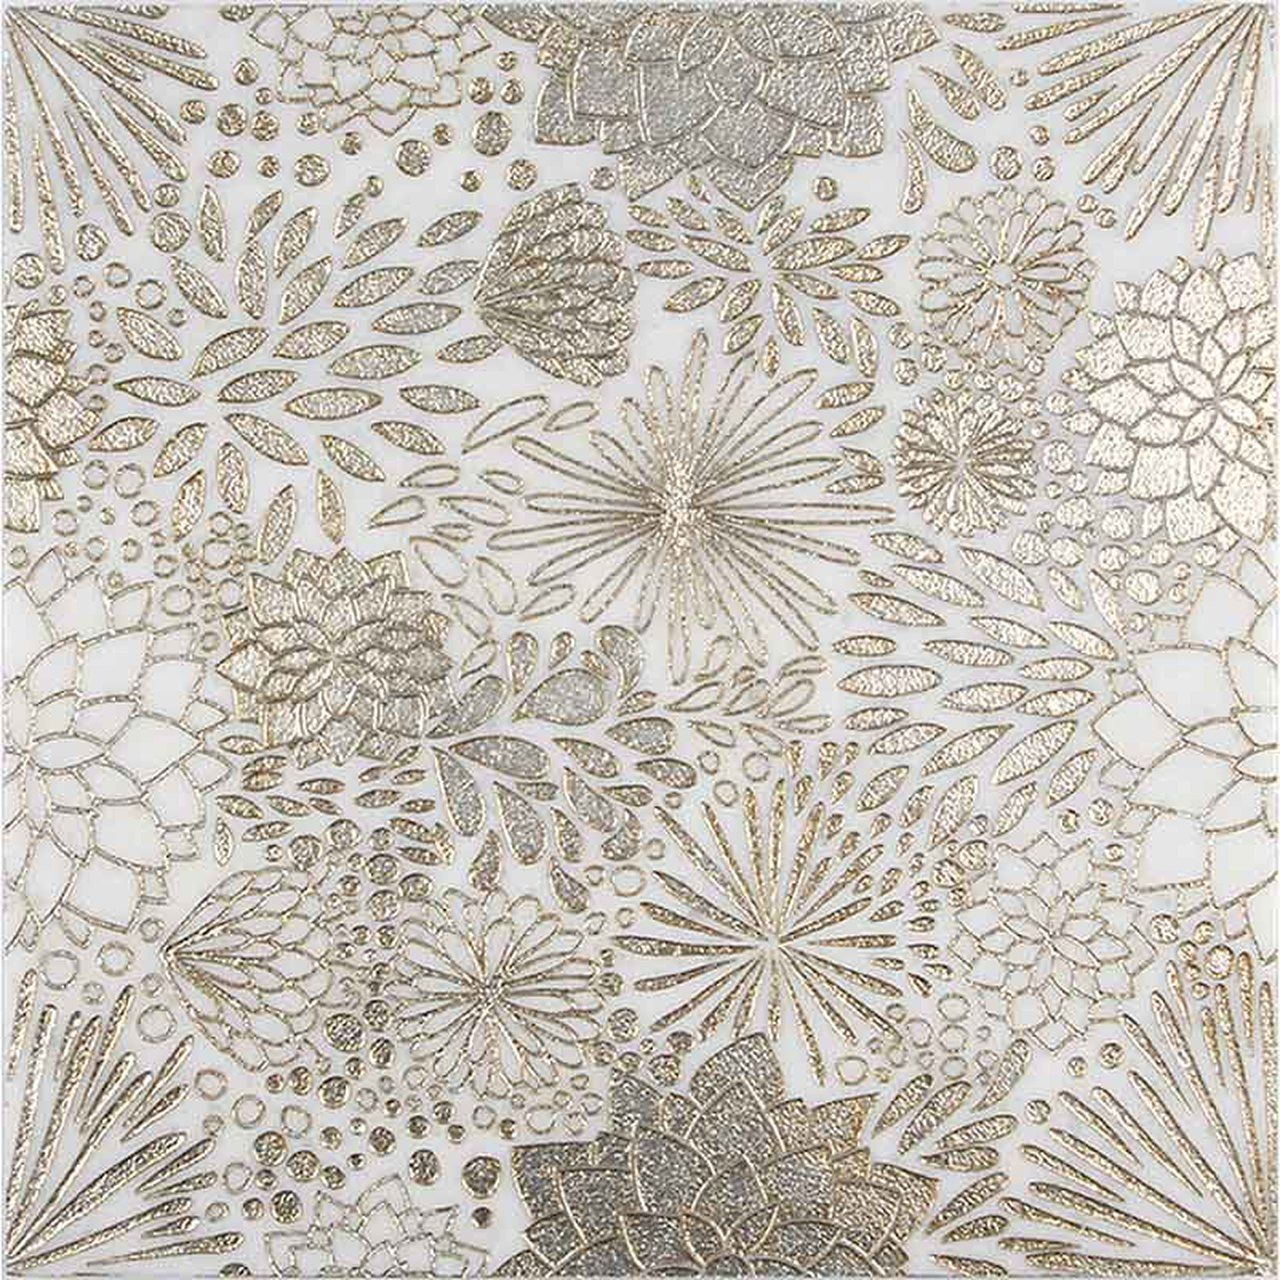 Code Dah Gold Product Name Dahlia Gold Material Ashen White Marble Surface Engraved Rustic Silver Leaf In 2020 Marble Tile Marble Tiles Rustic Silver